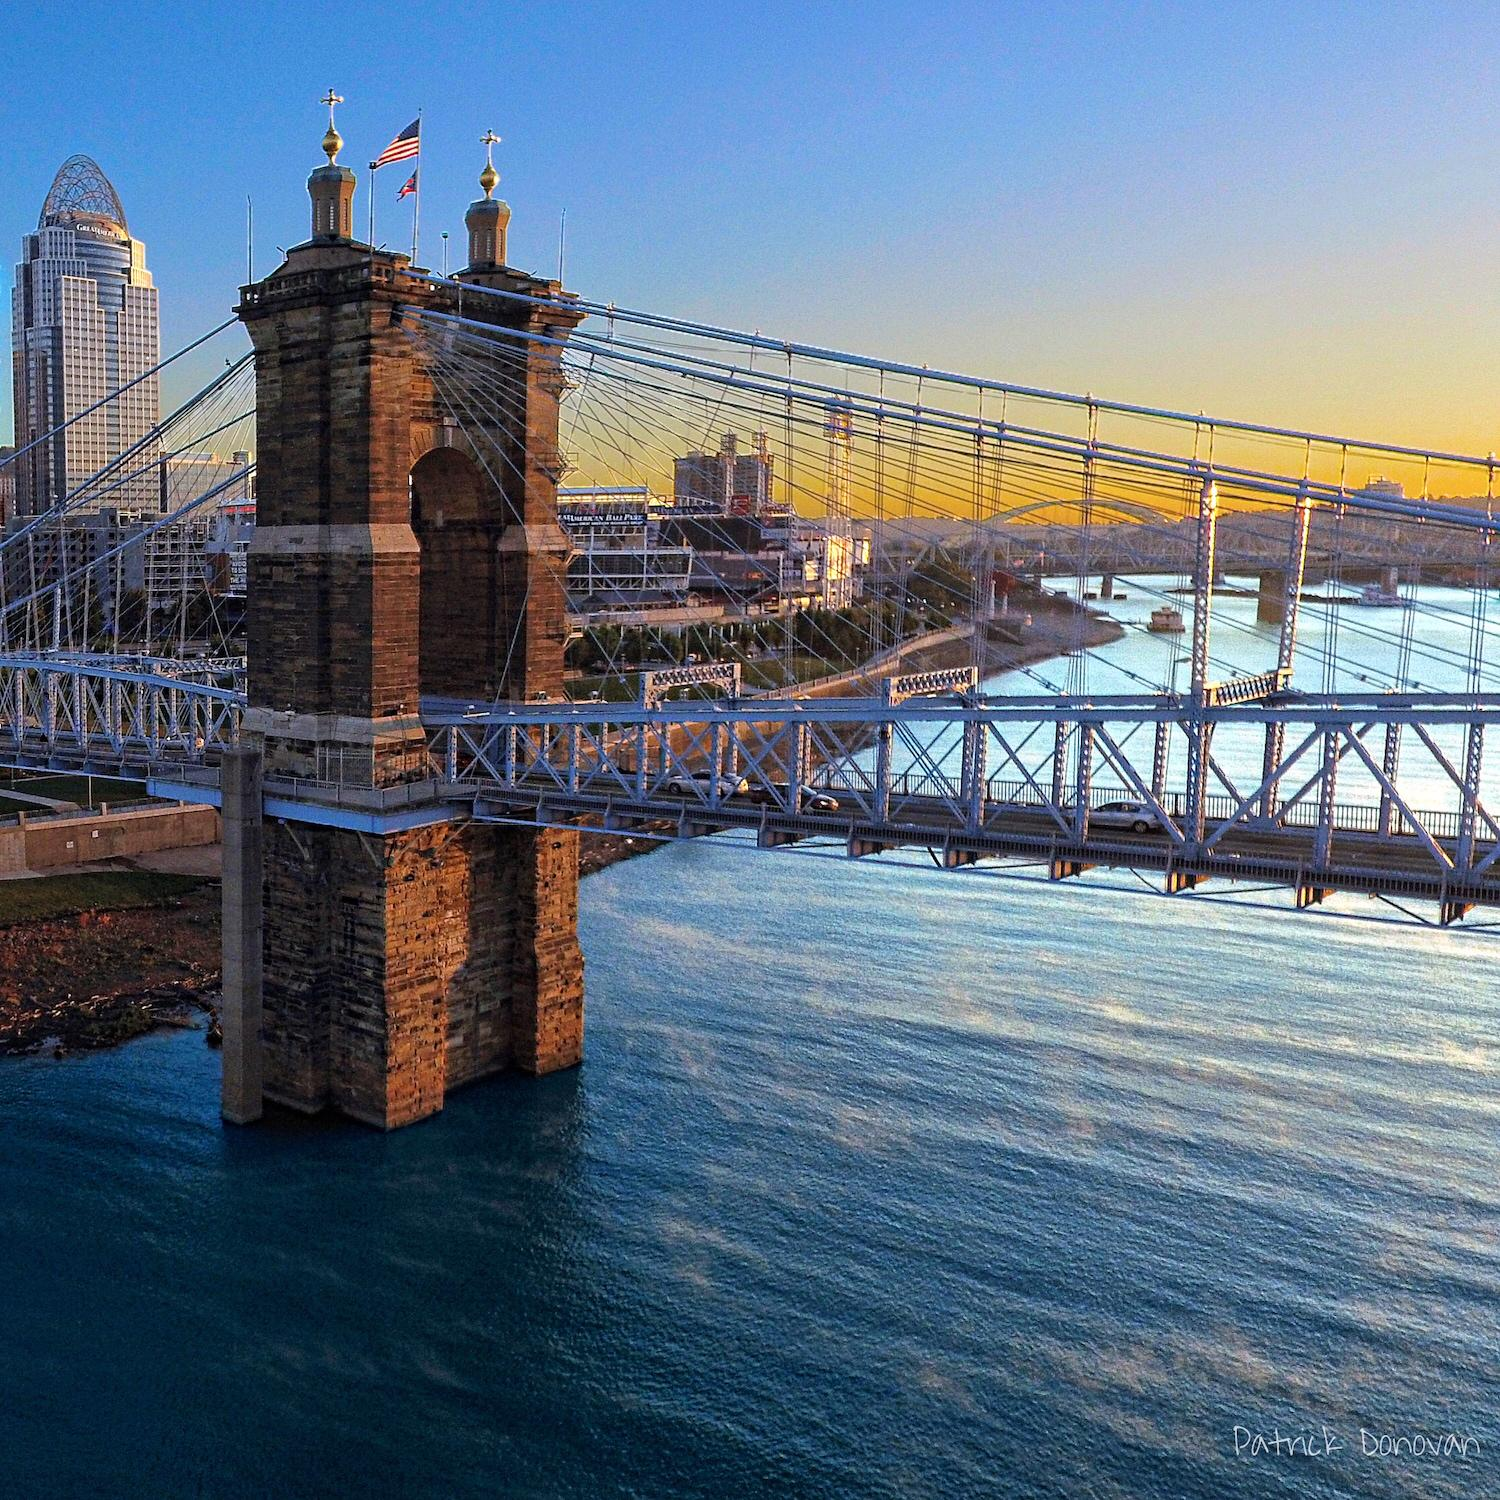 Patrick Donovan (known on Instagram as @_thatdroneguy) captures beautiful images of Cincinnati, among other things, on his DJI Phantom 4 Pro drone camera. / Image: Patrick Donovan // Published: 1.13.18